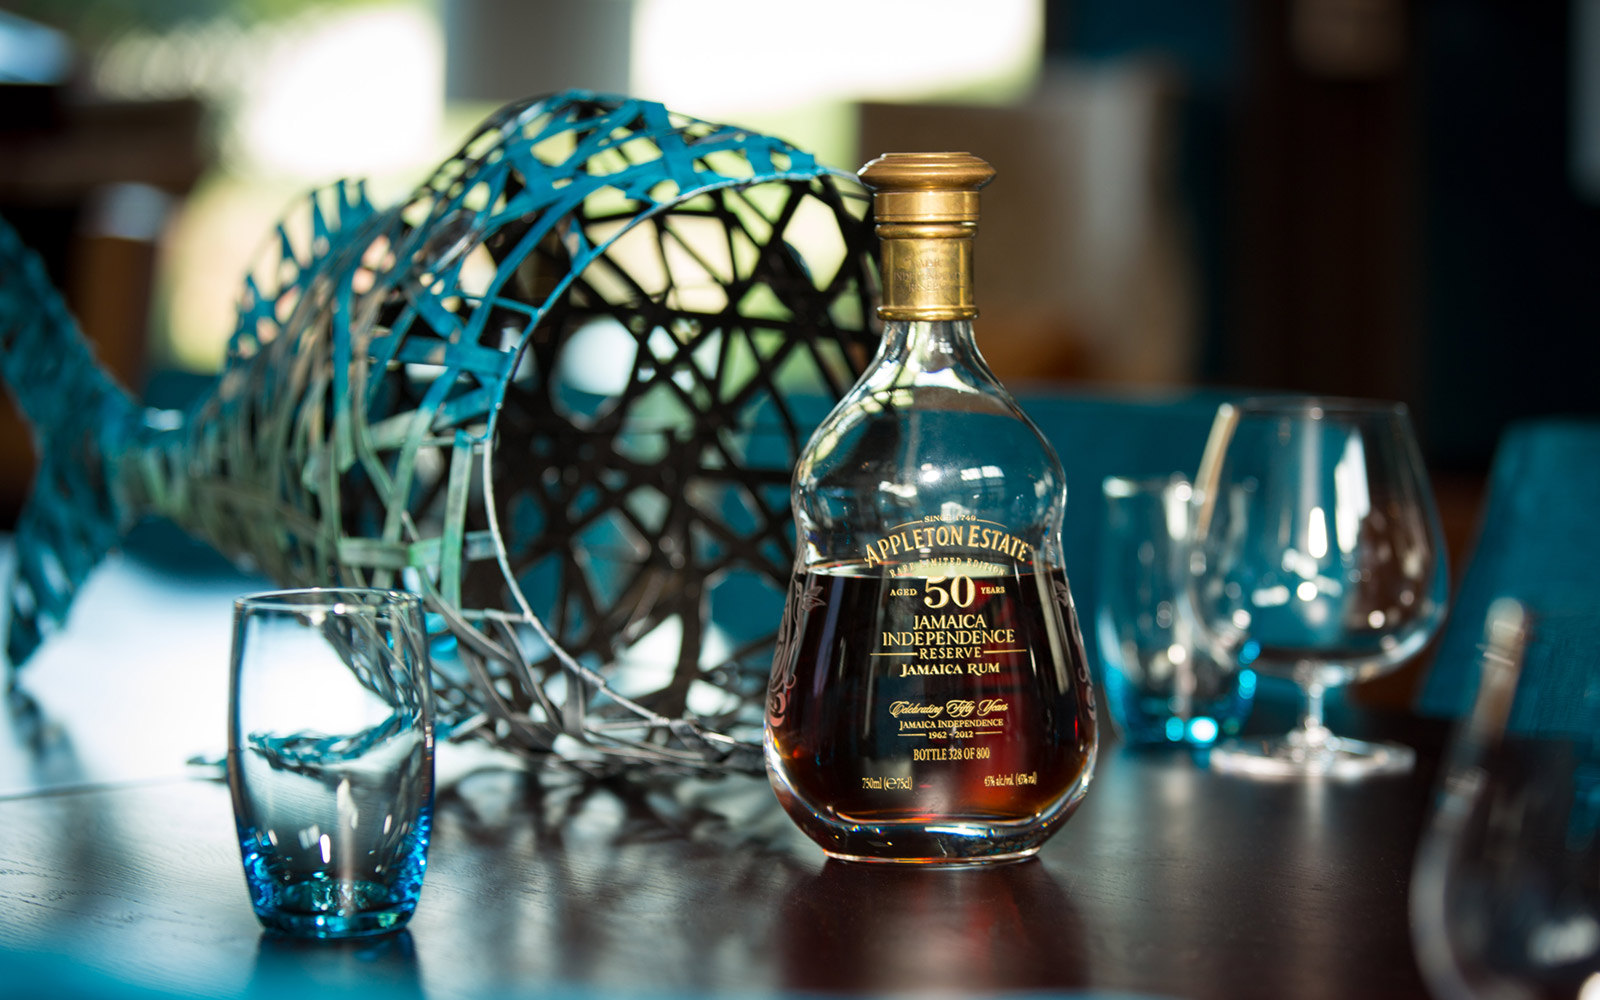 Jamaican Rum, Rhum Room, Zemi Beach House